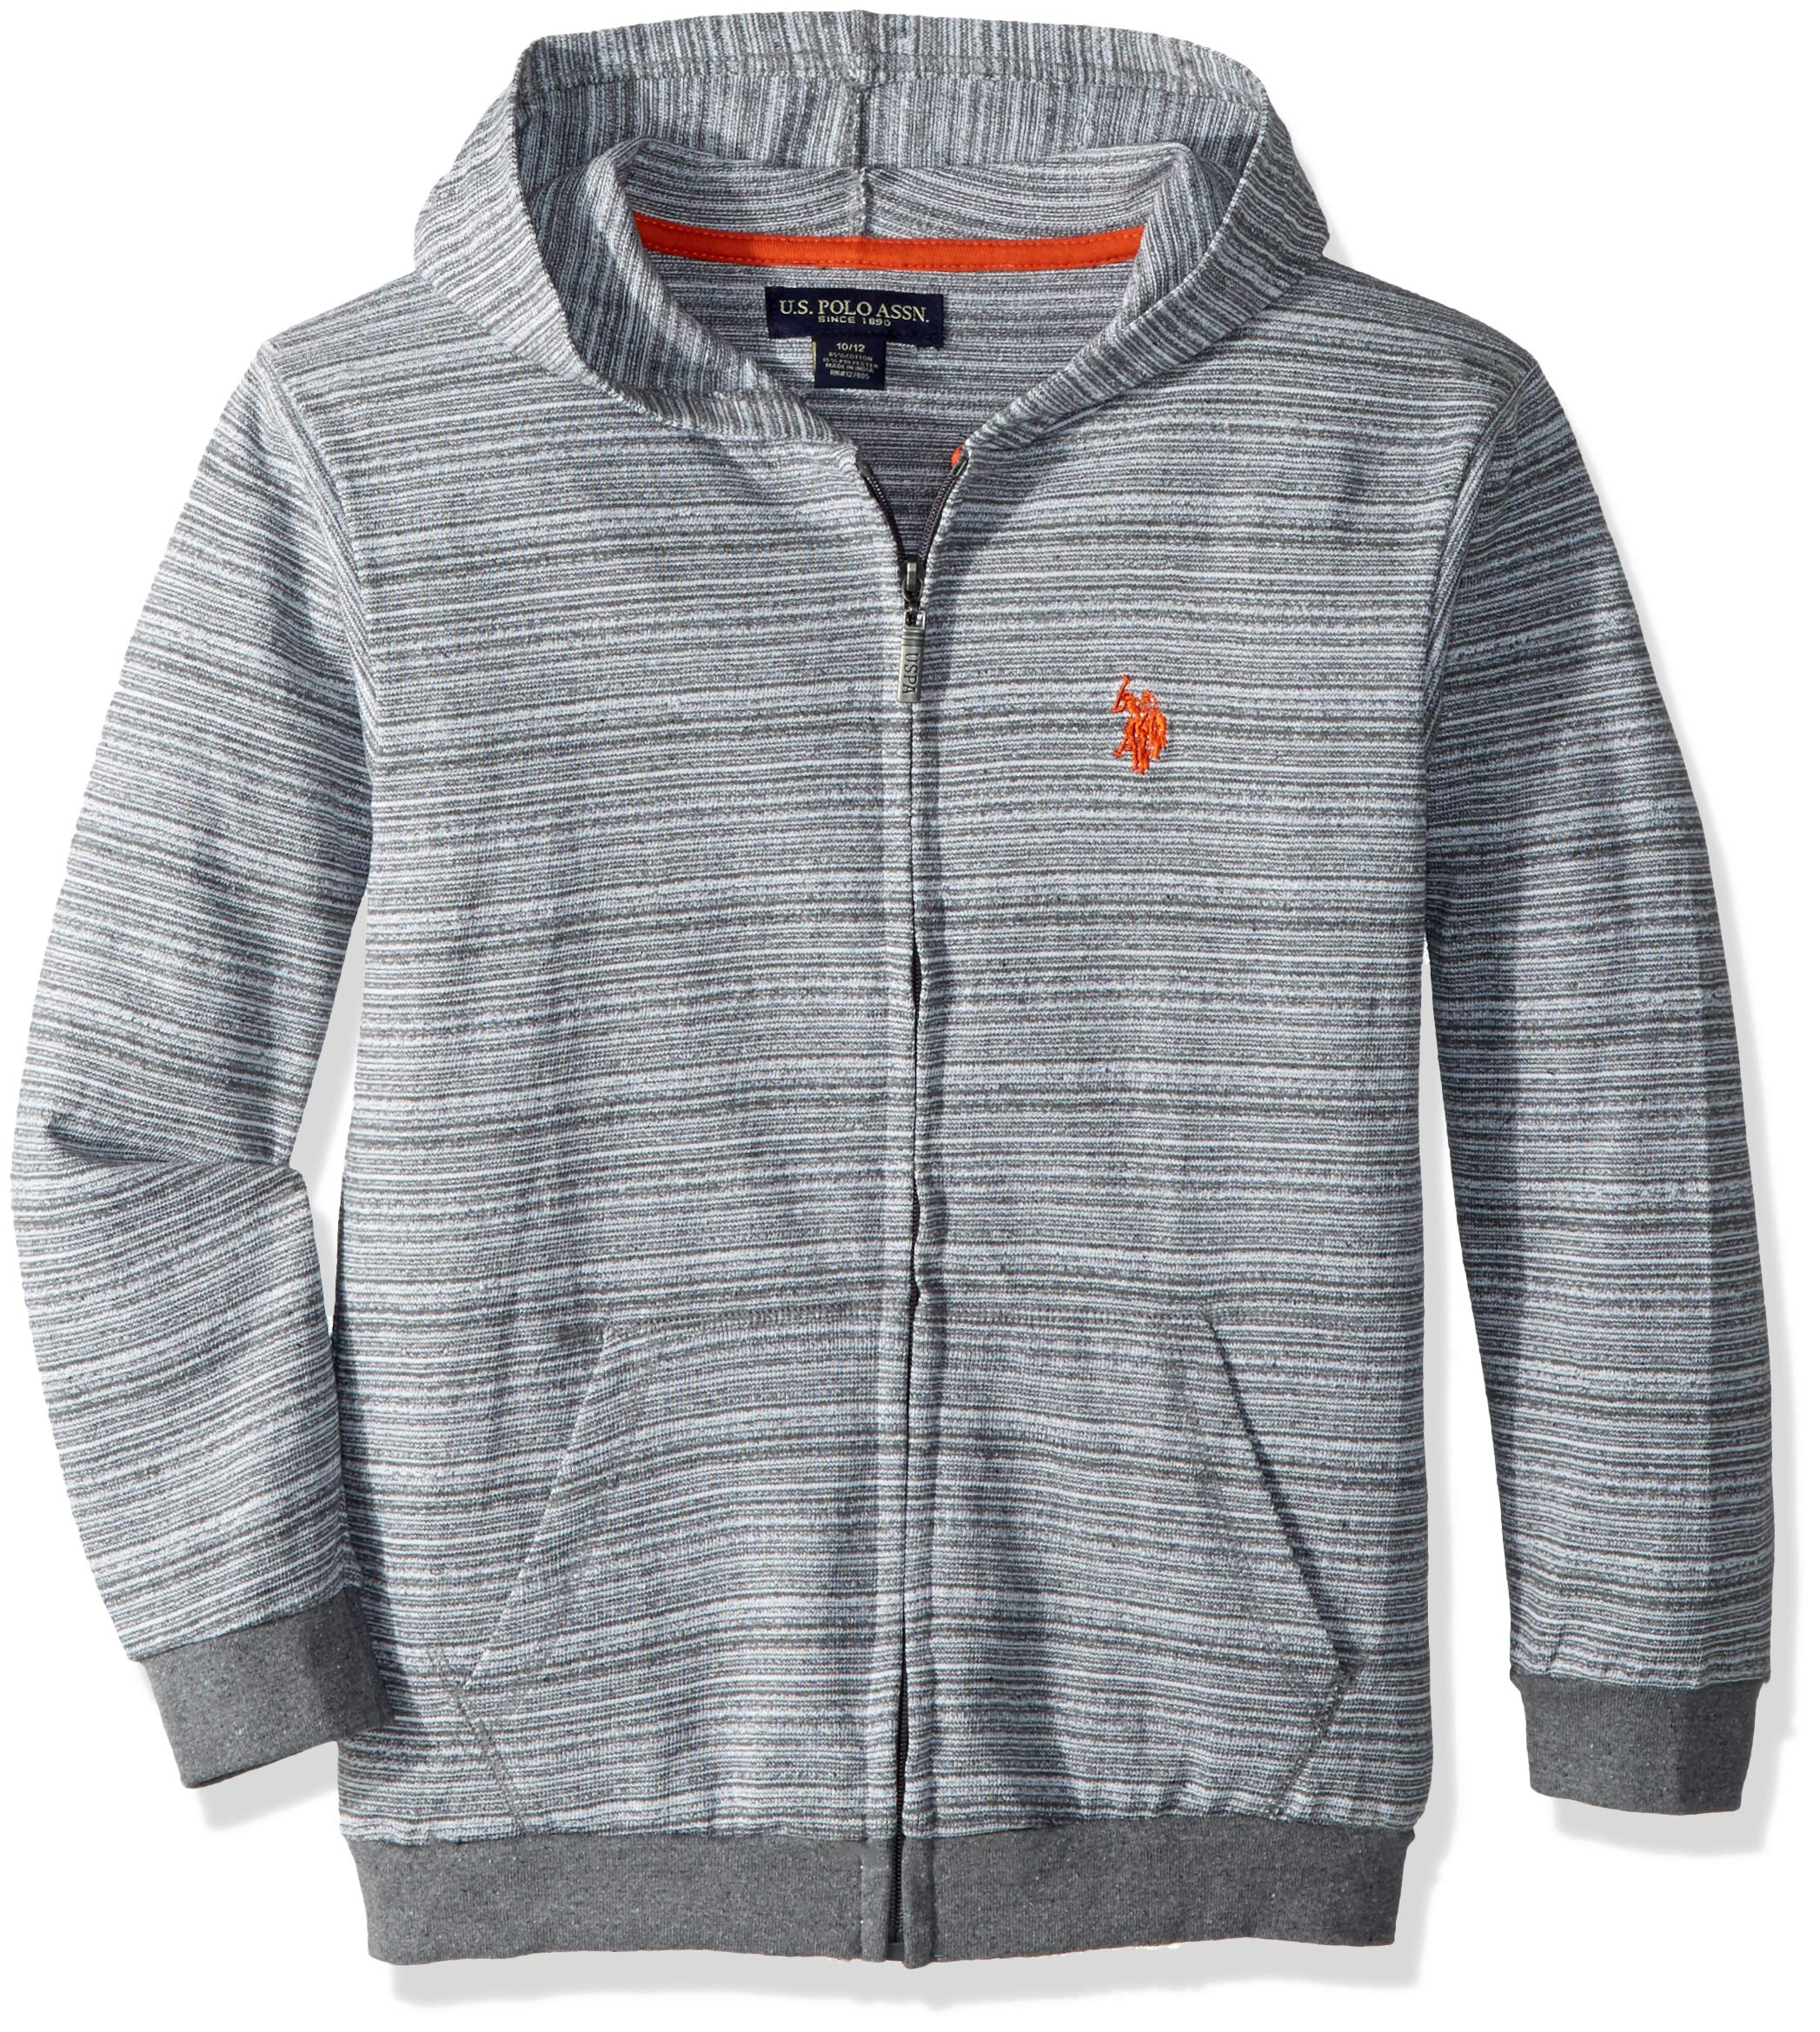 U.S. Polo Assn. Big Boys' Long Sleeve Fleece Hoodie, Lightweight Medium Grey, 18